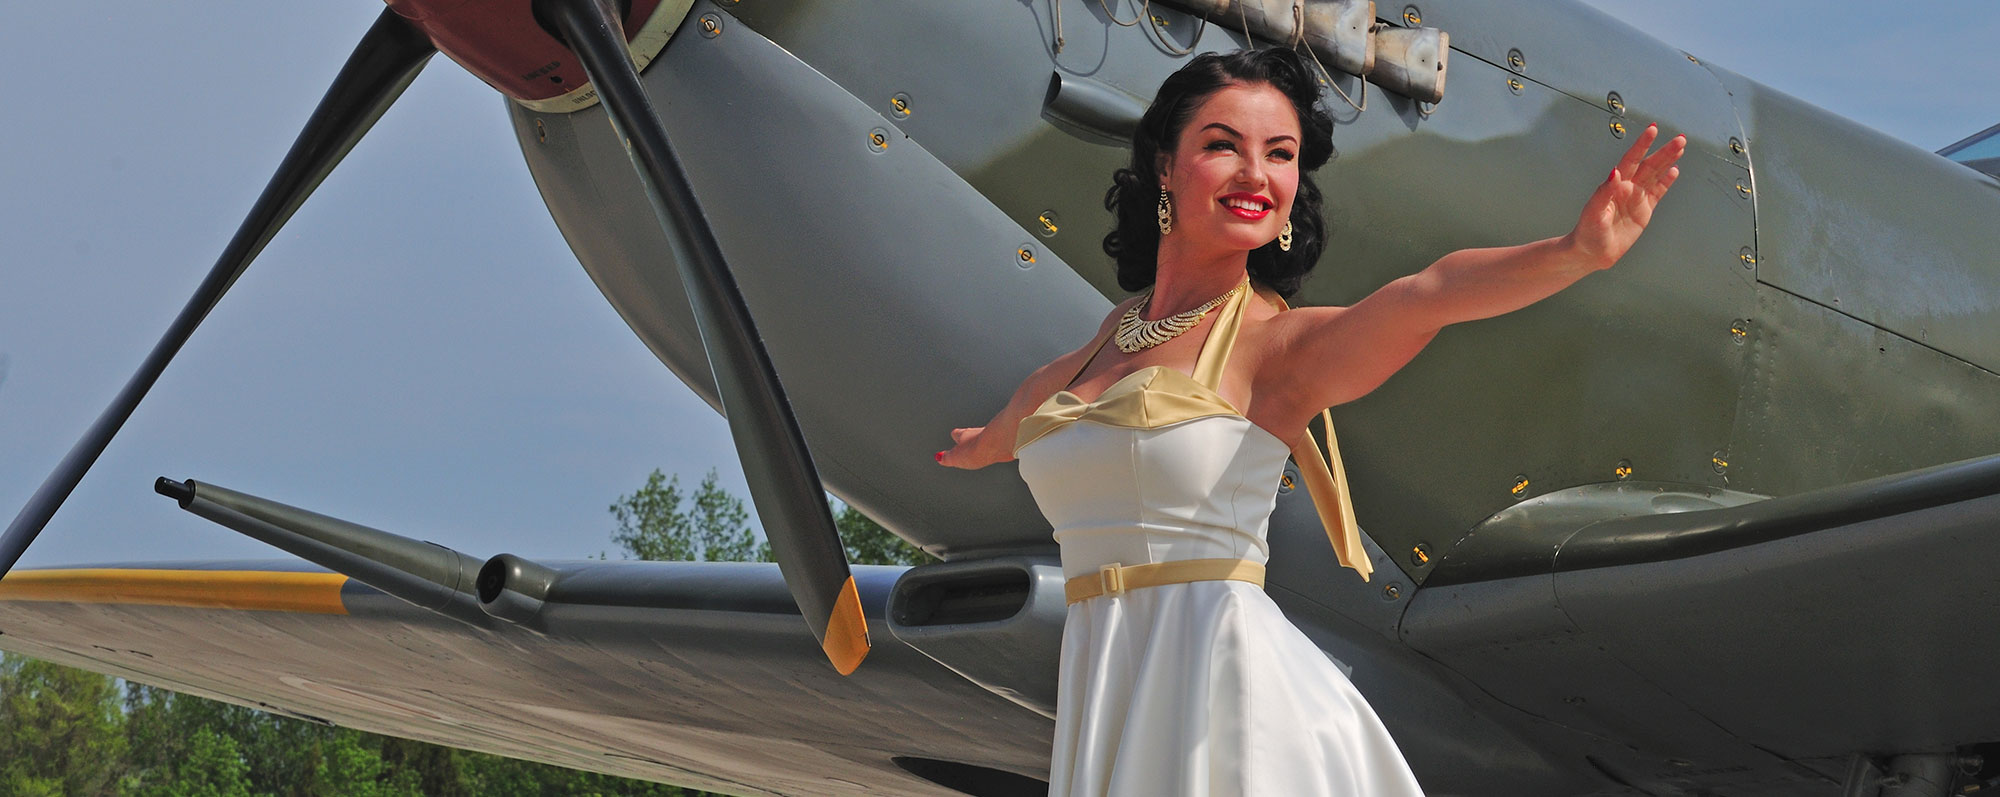 Drawn pin up  wwii aircraft Pinup Warbird February; Home Girls